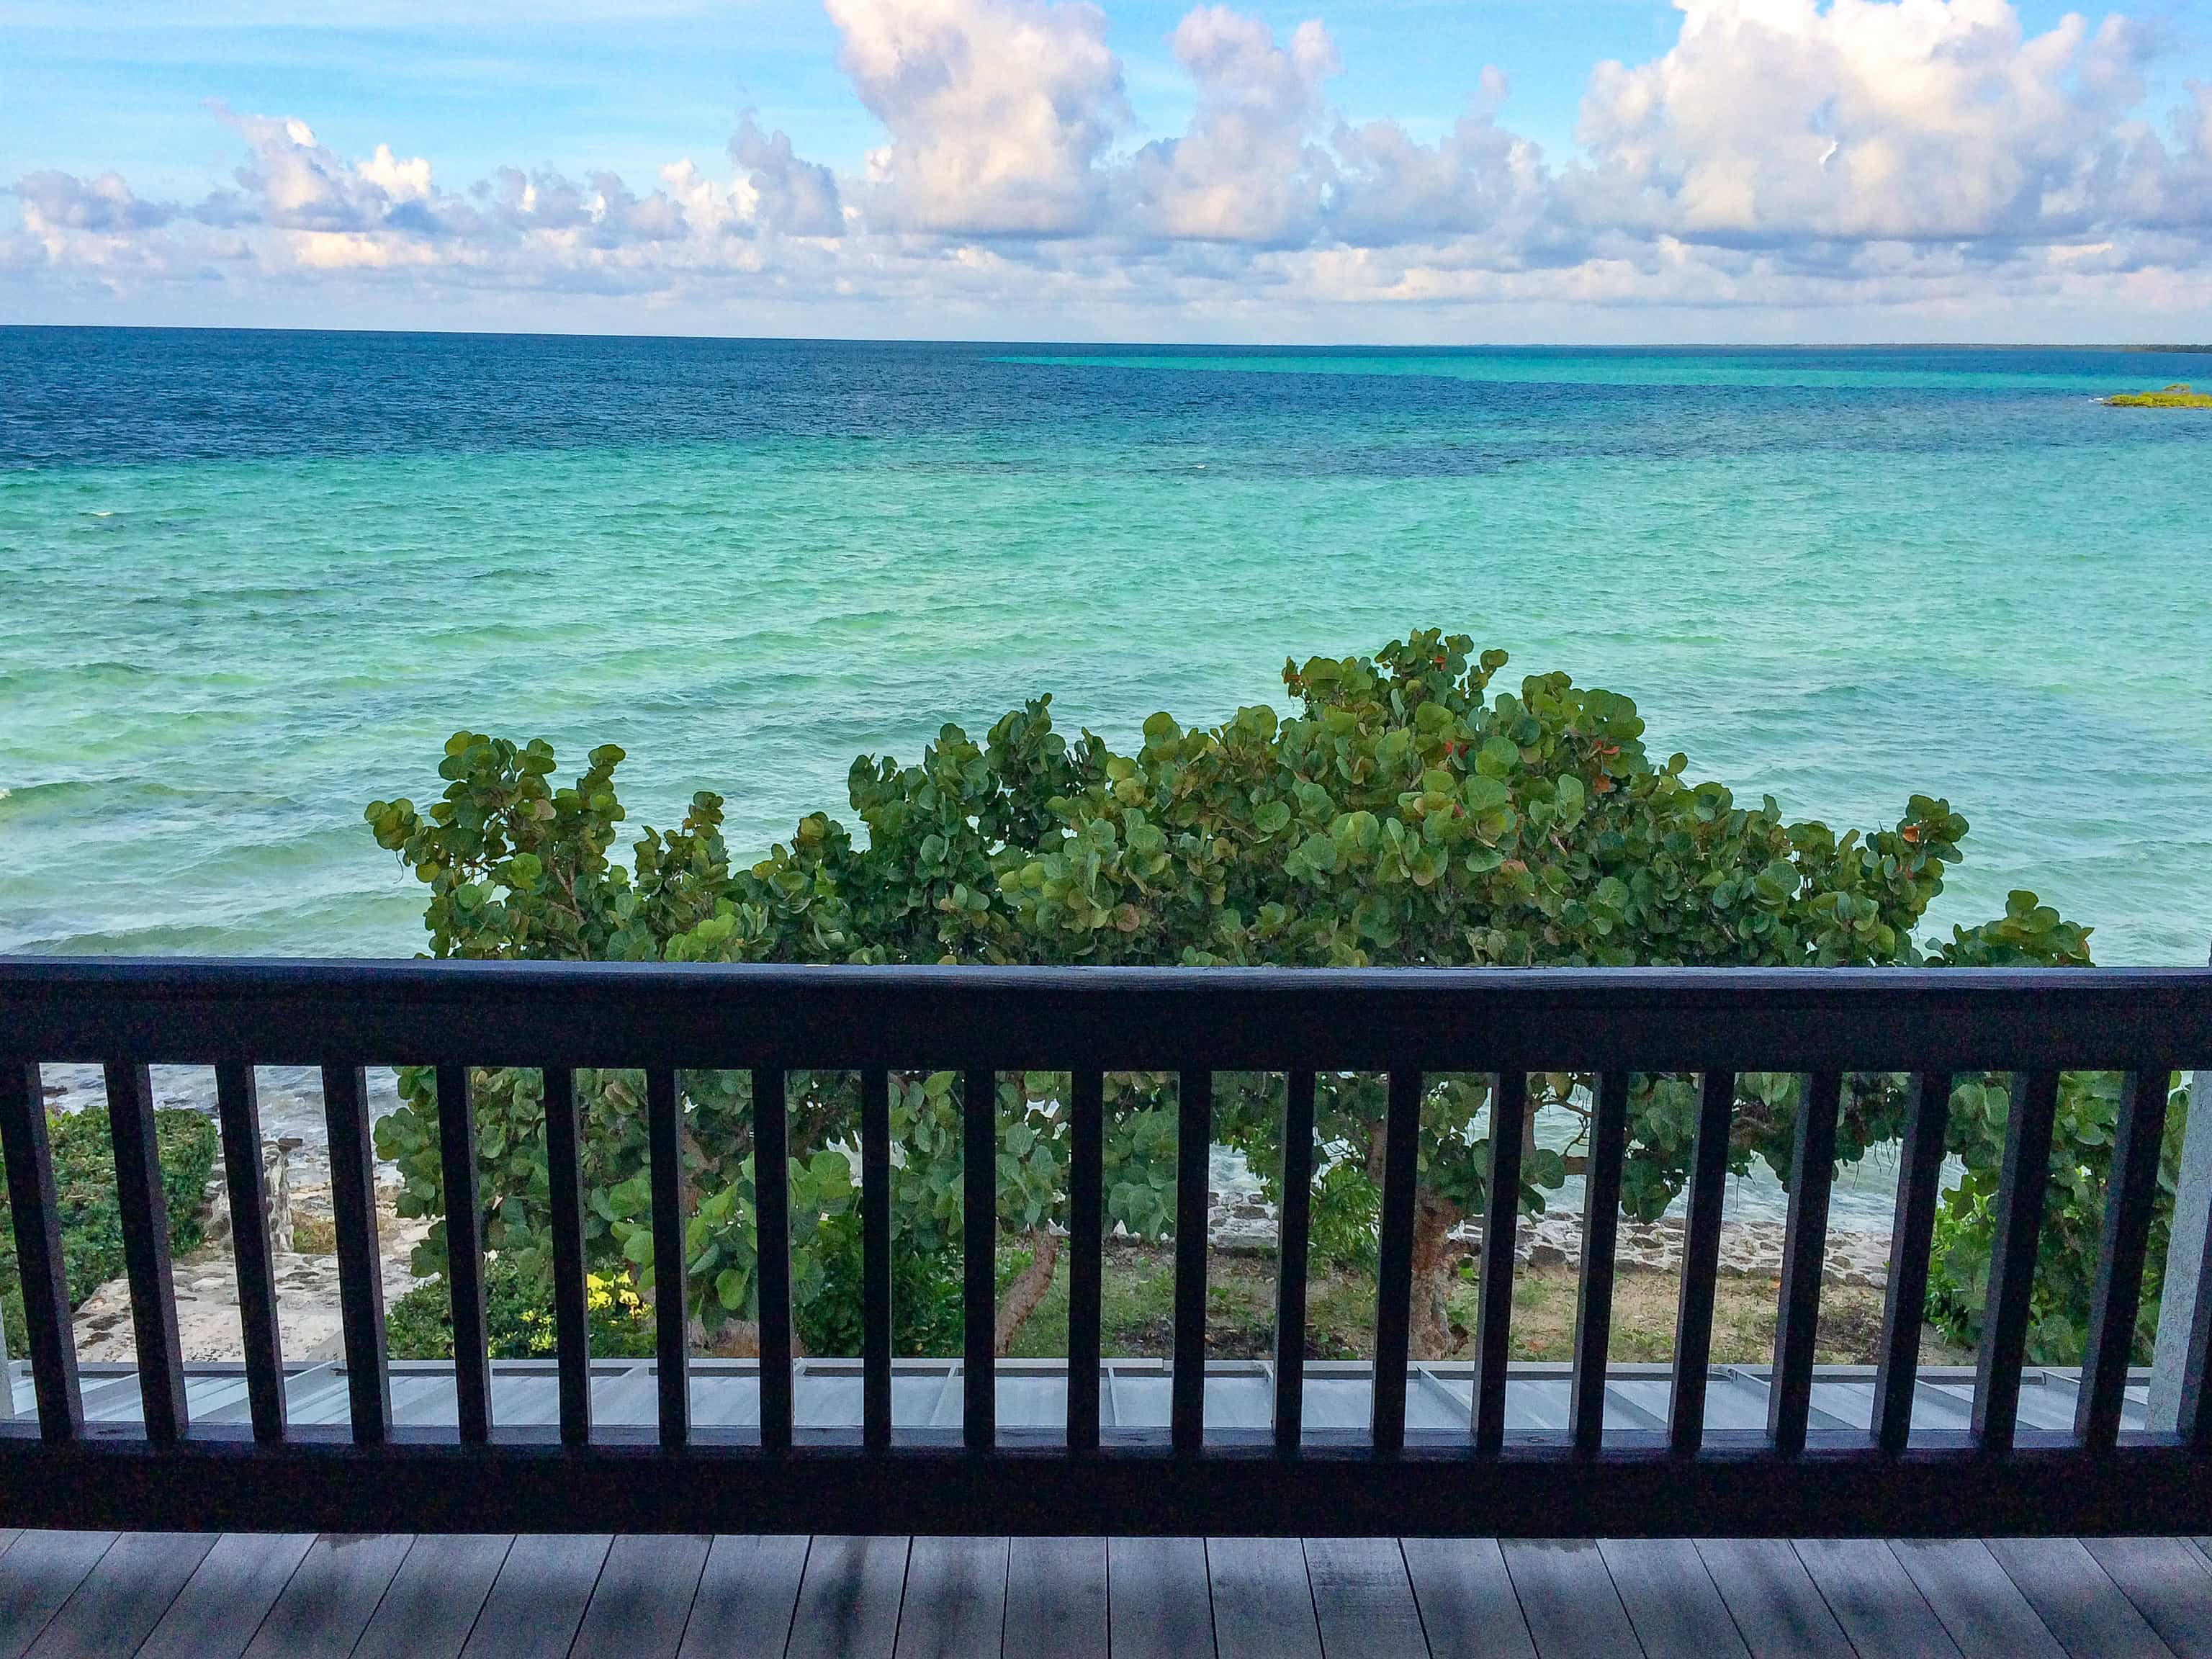 Master Bedroom view from Gumbo Limbo Villa at Deep Water Cay, The Bahamas | SBPR